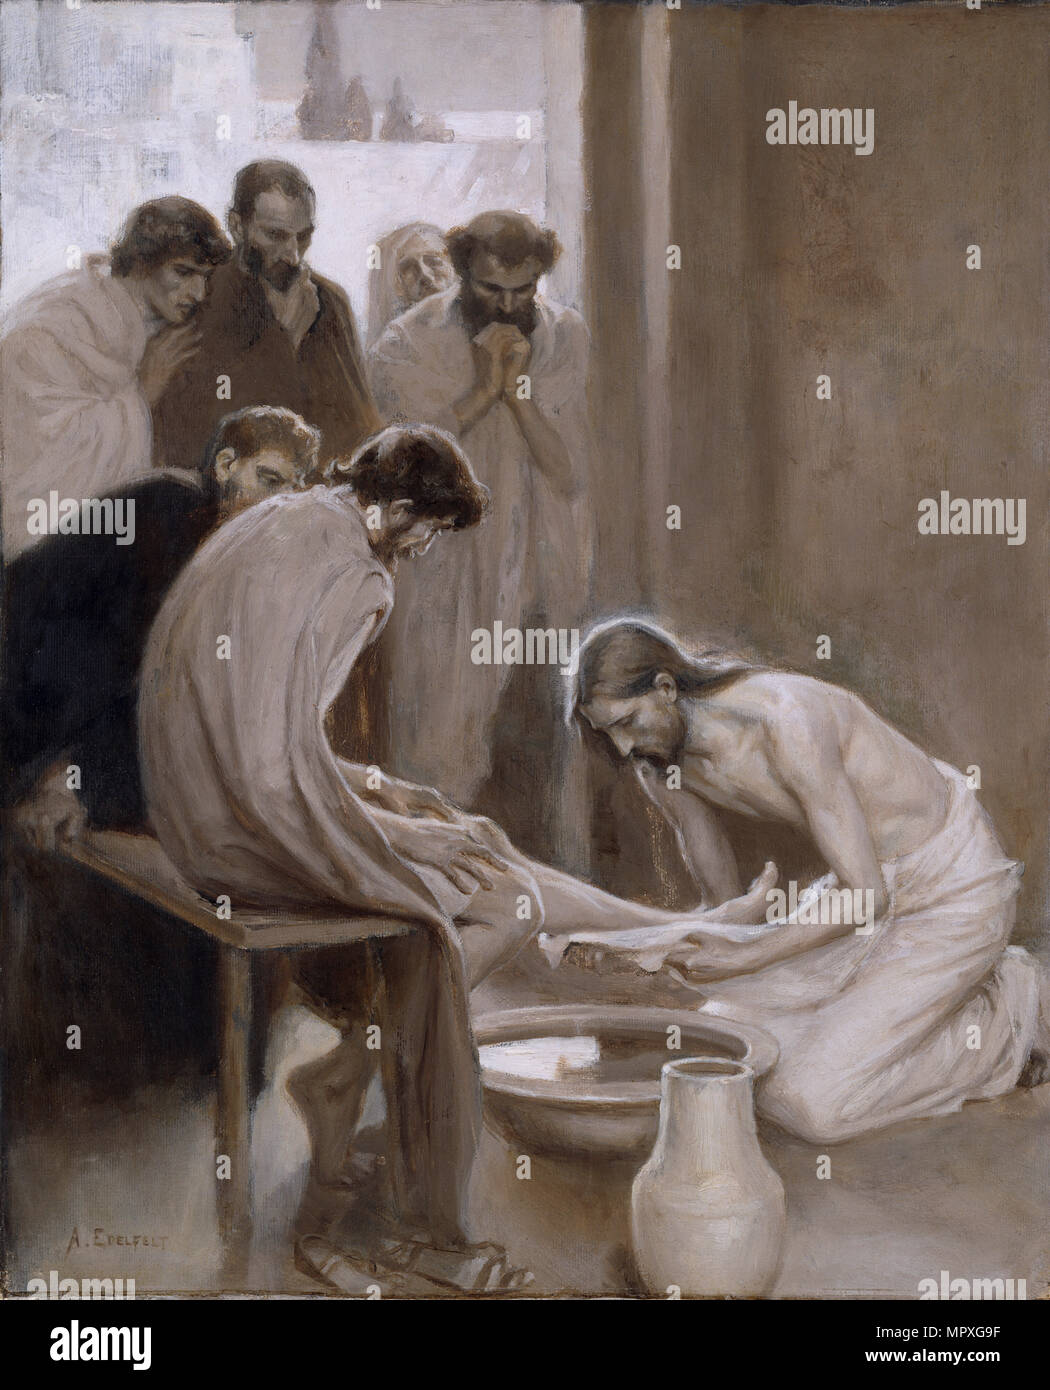 Christ washing the Feet of the Disciples, 1898. Stock Photo